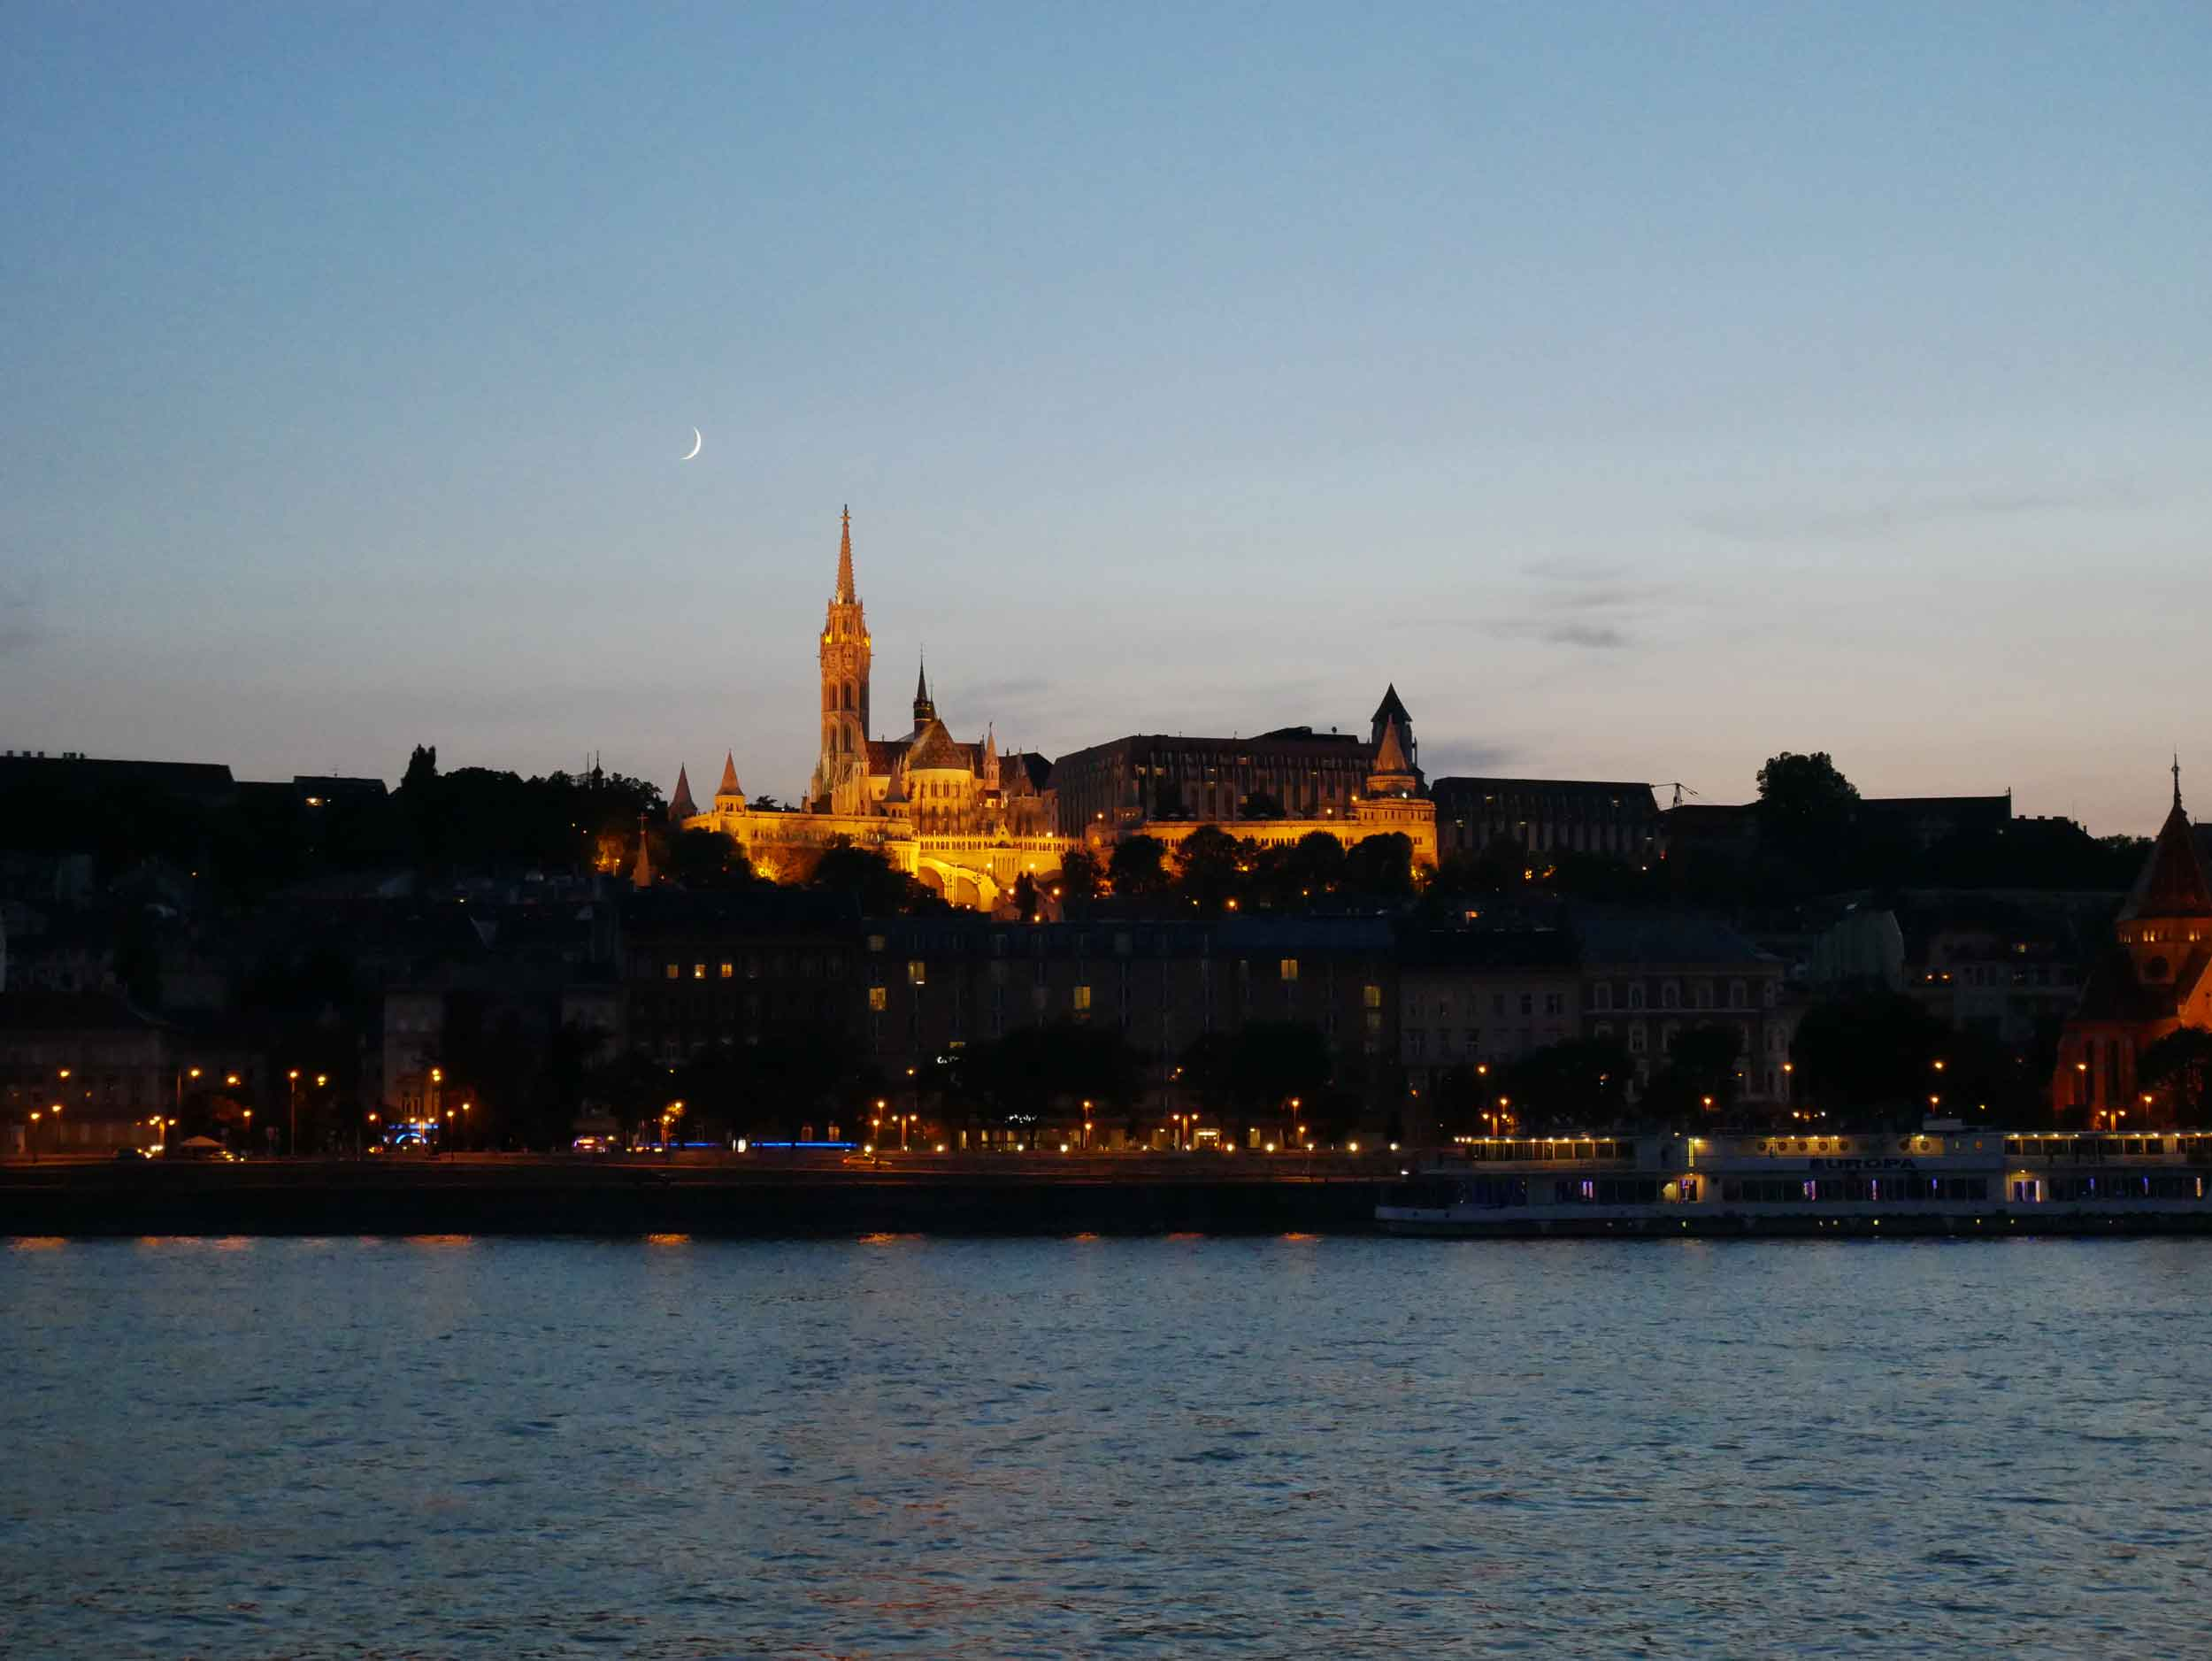 View of Fisherman's Bastion, located atop a hill on the Buda side of the Danube.